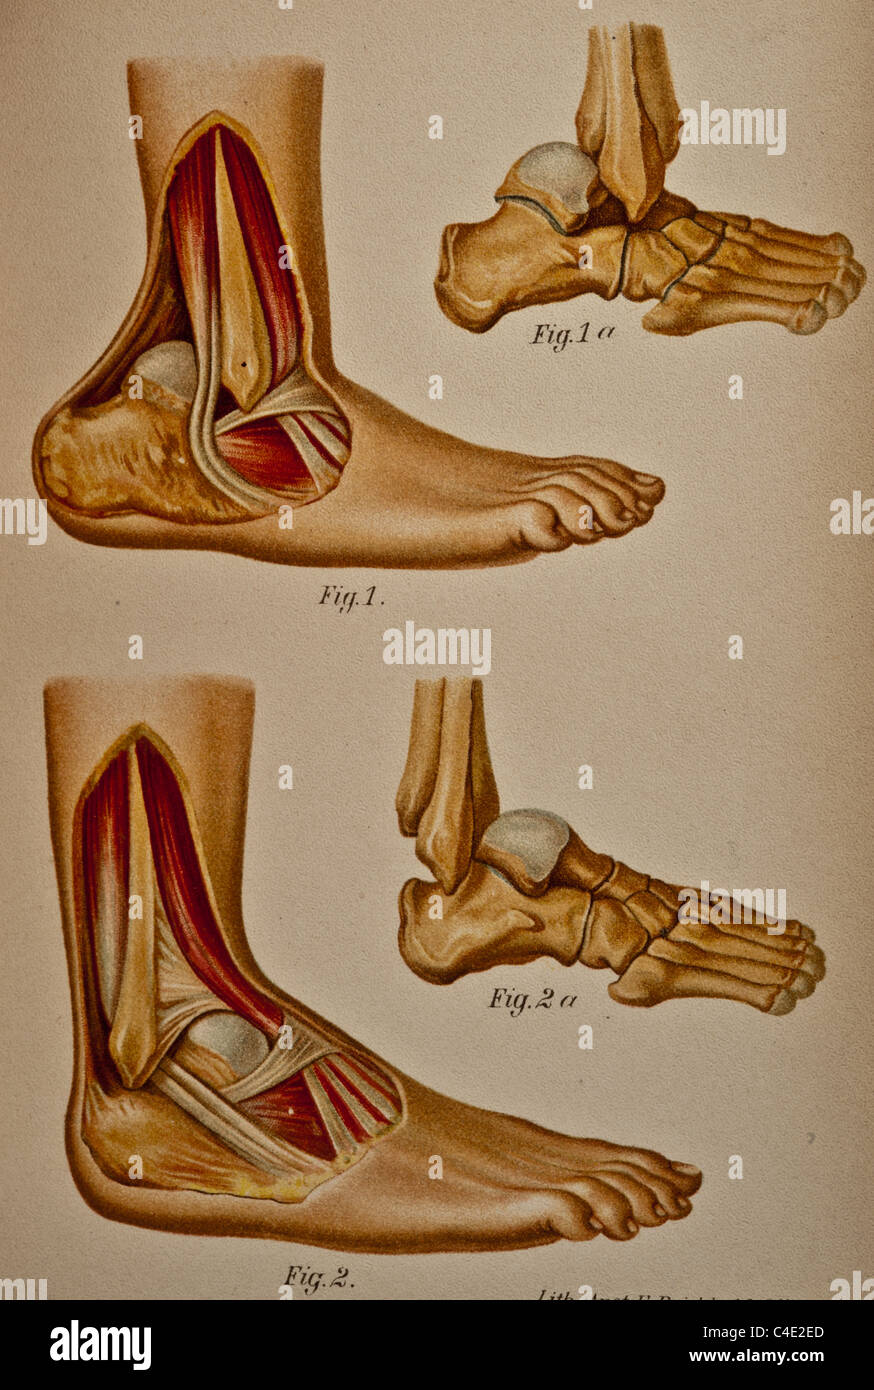 Illustration of the Human Ankle copyright 1902 - Stock Image